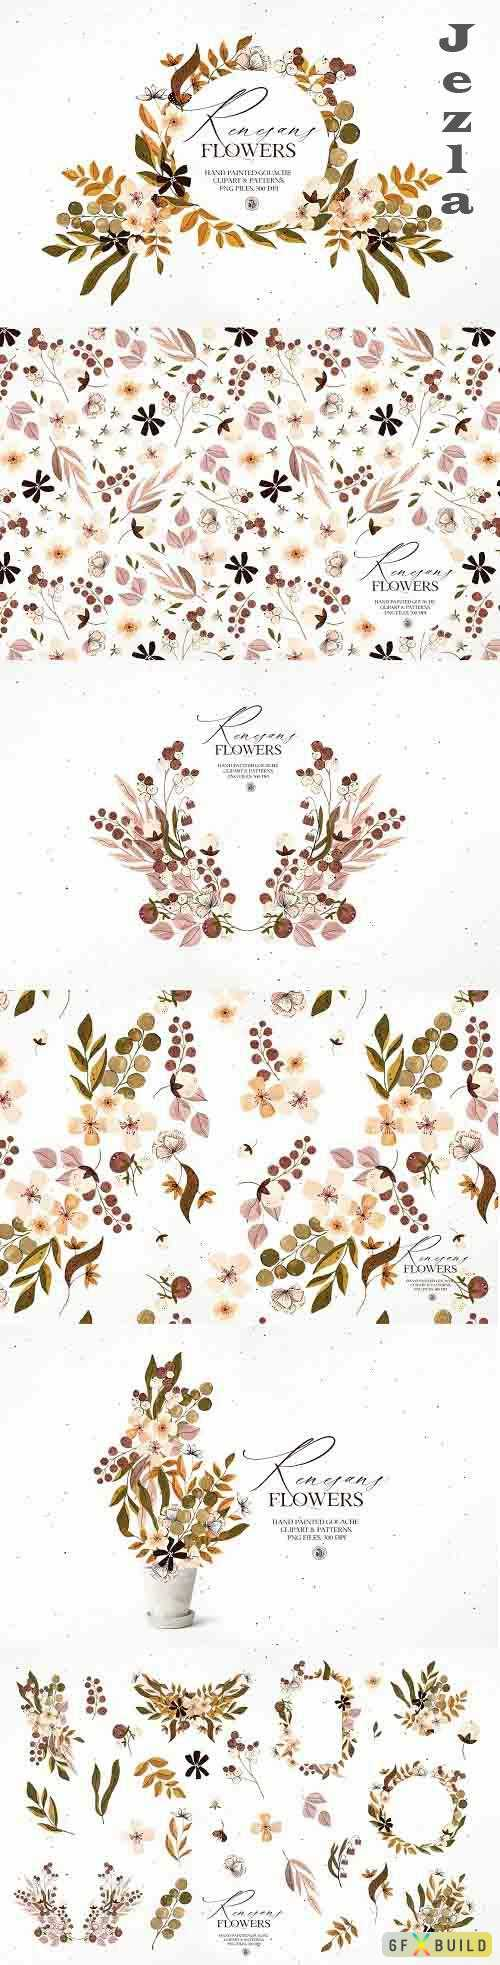 Renesans Flowers - gouache clipart - 6134567